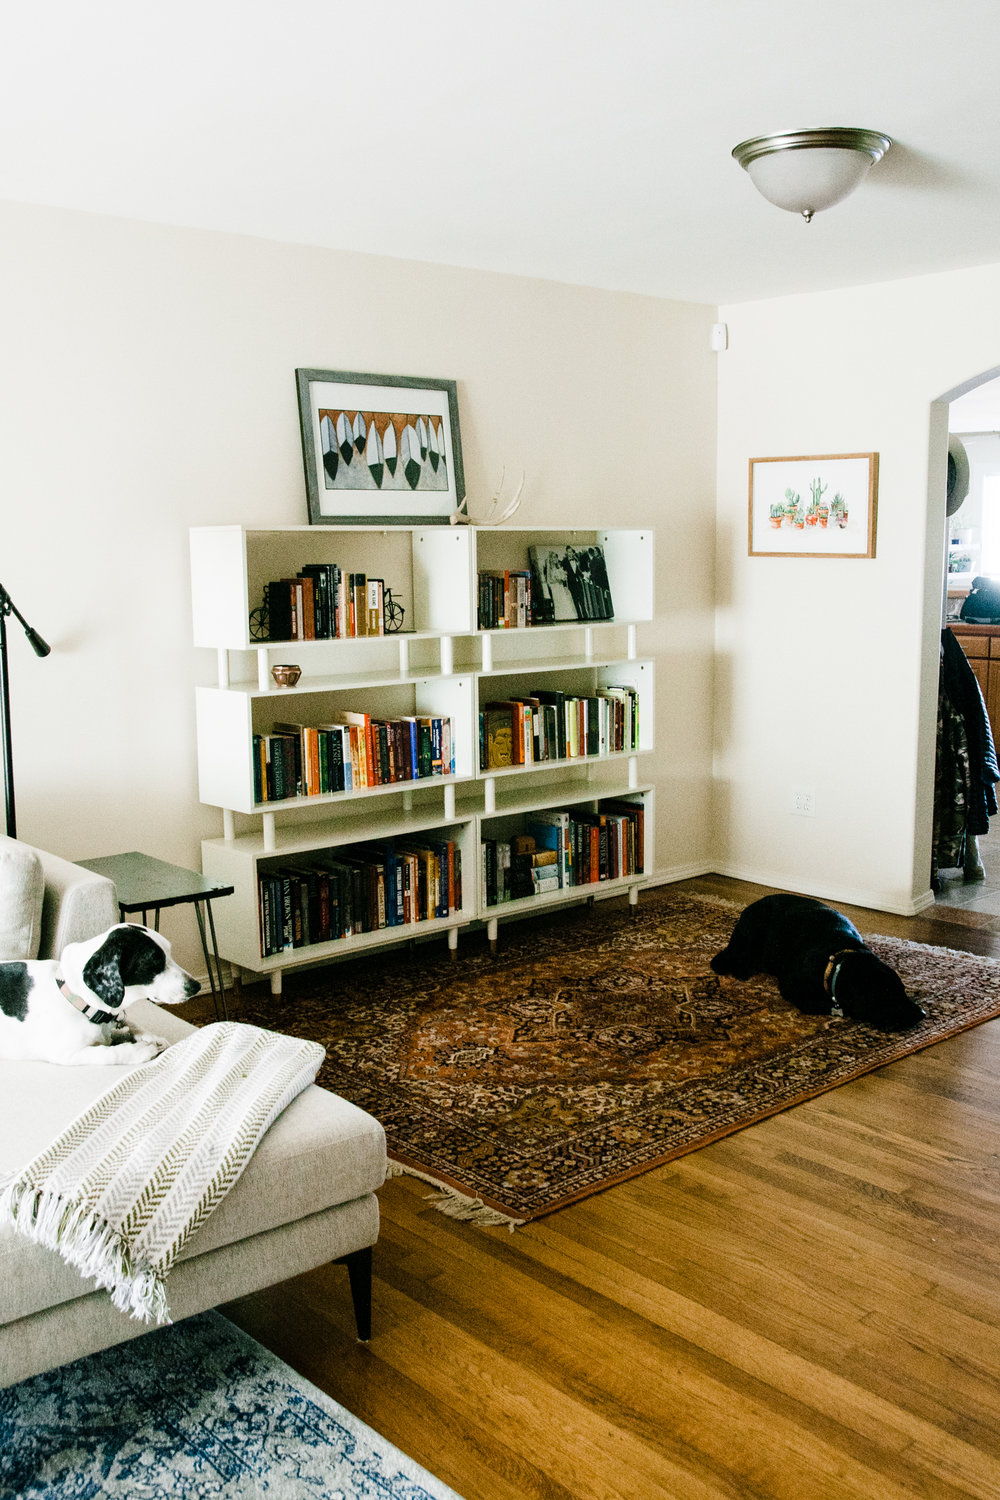 Shopping the home:    We shopped their home and found this gorgeous rug being underutilized in another room and brought it out to the library space we were creating.